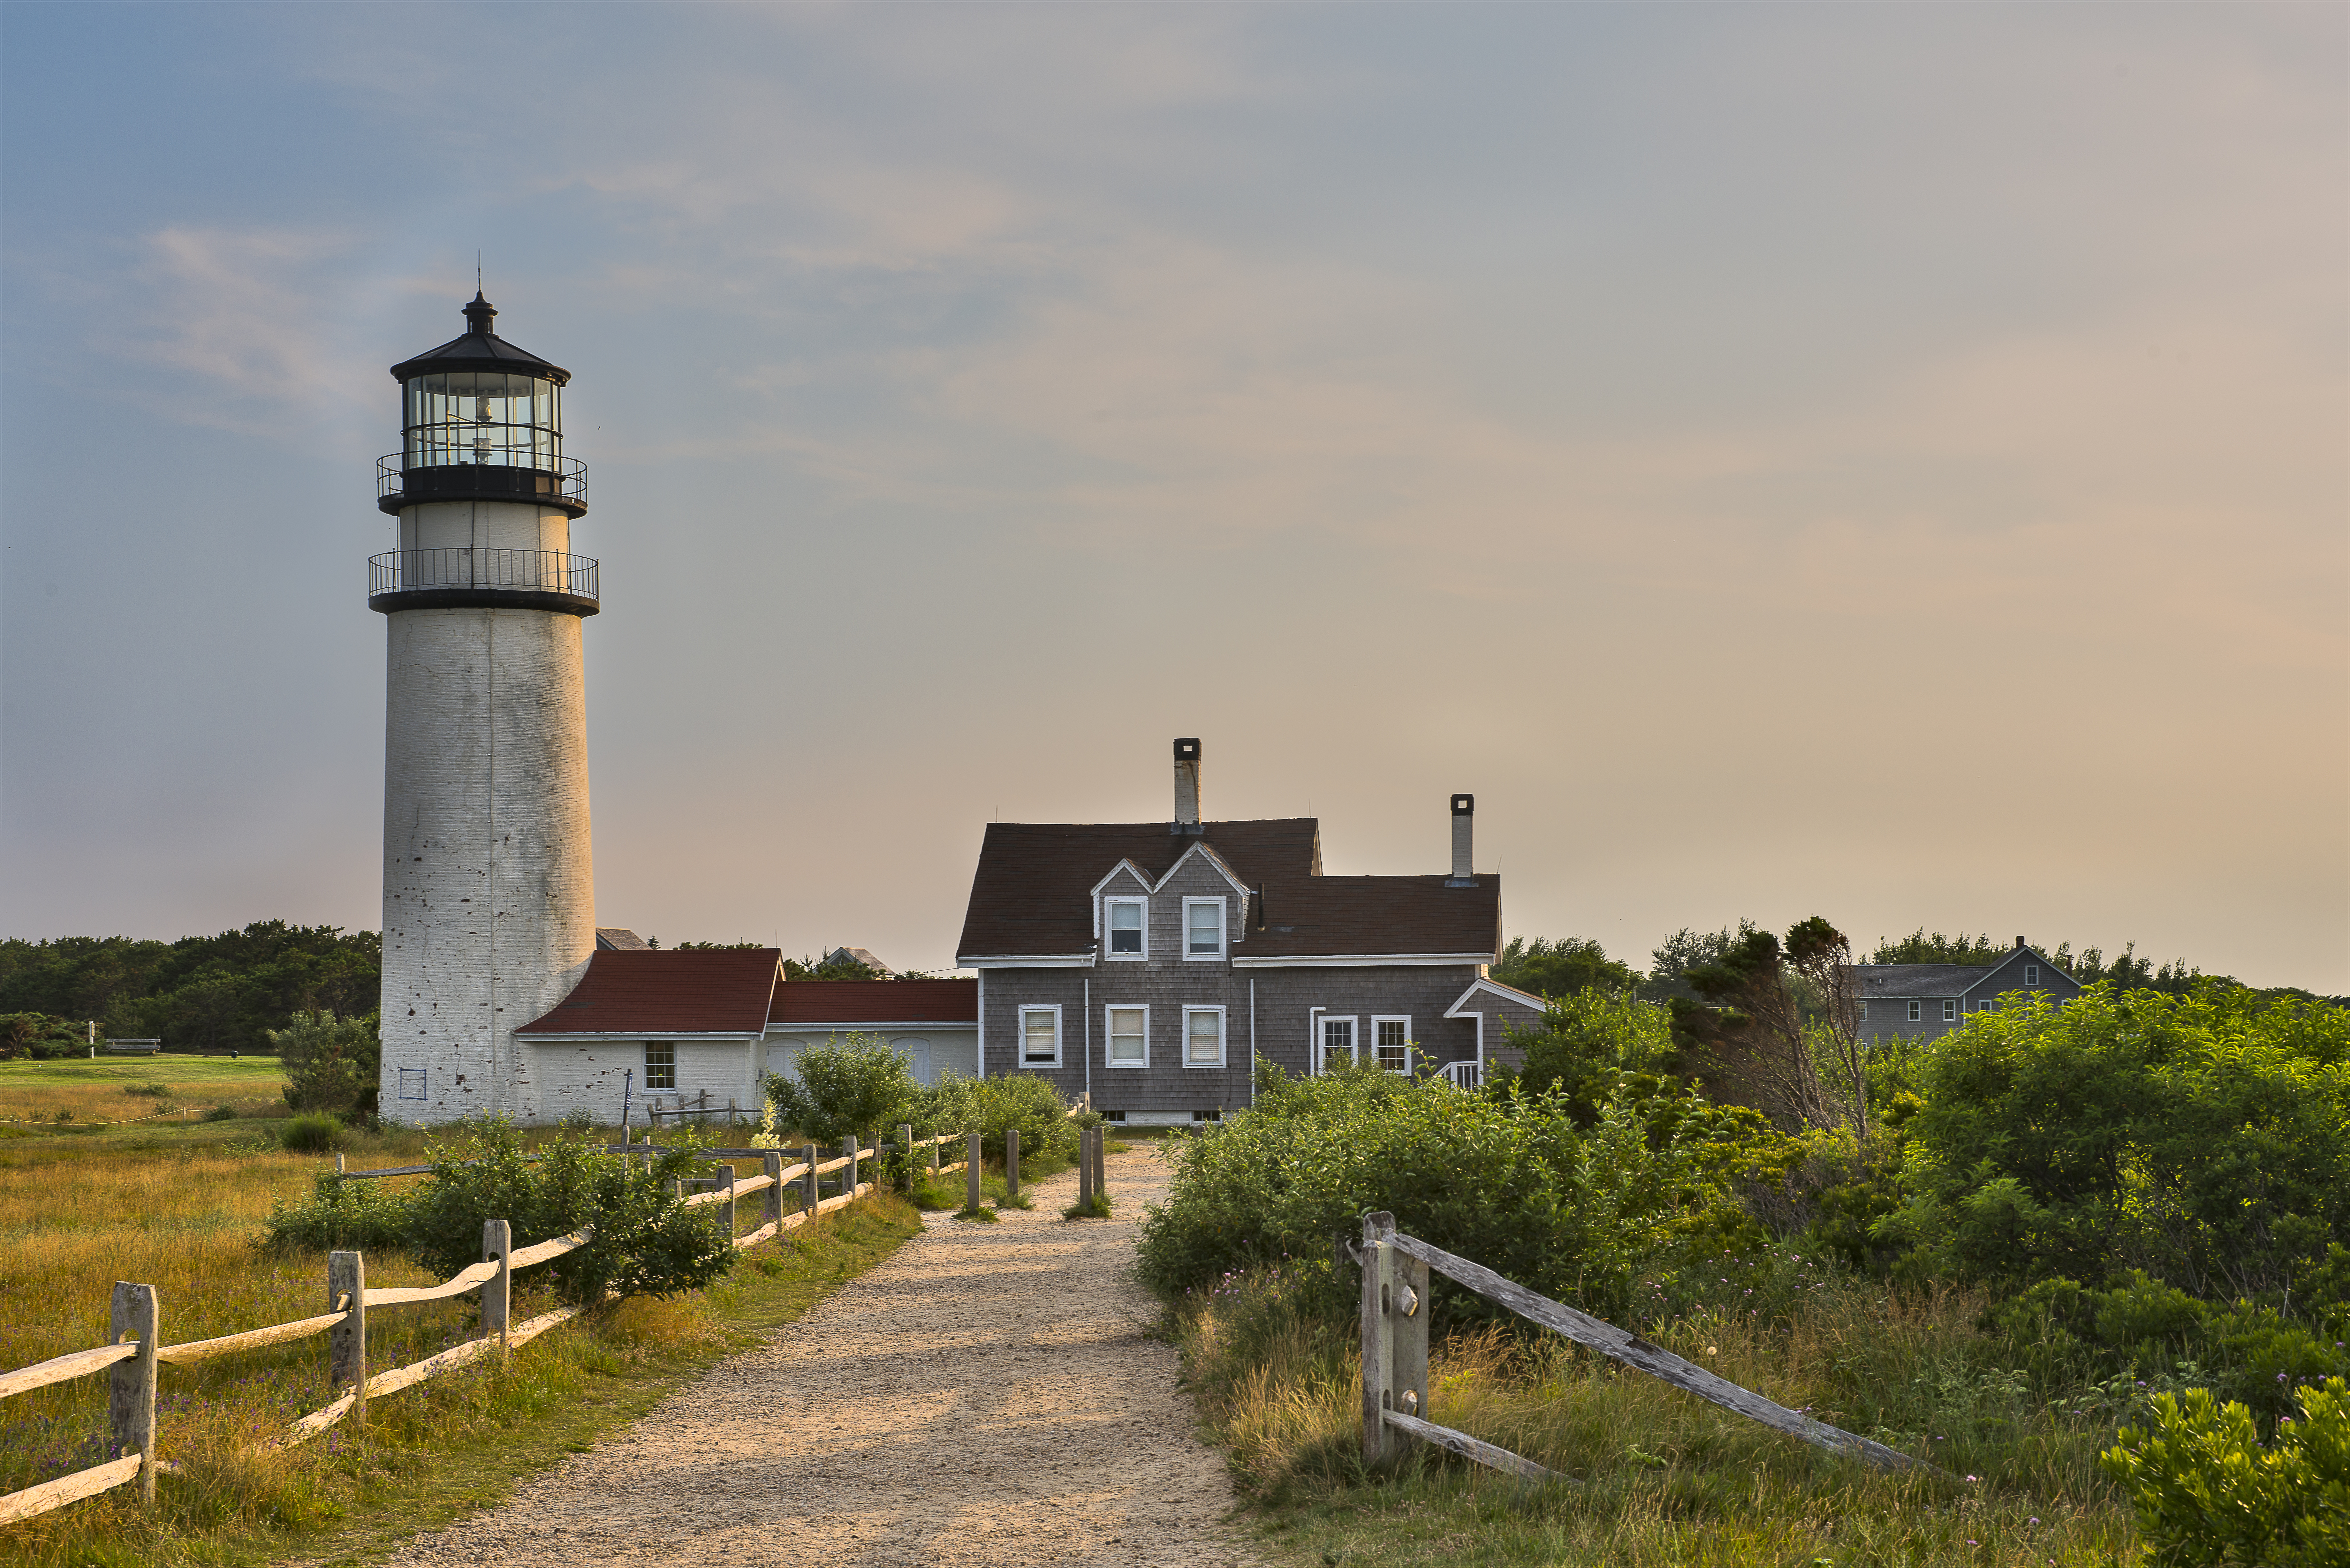 Truro Cape Cod Lighthouse